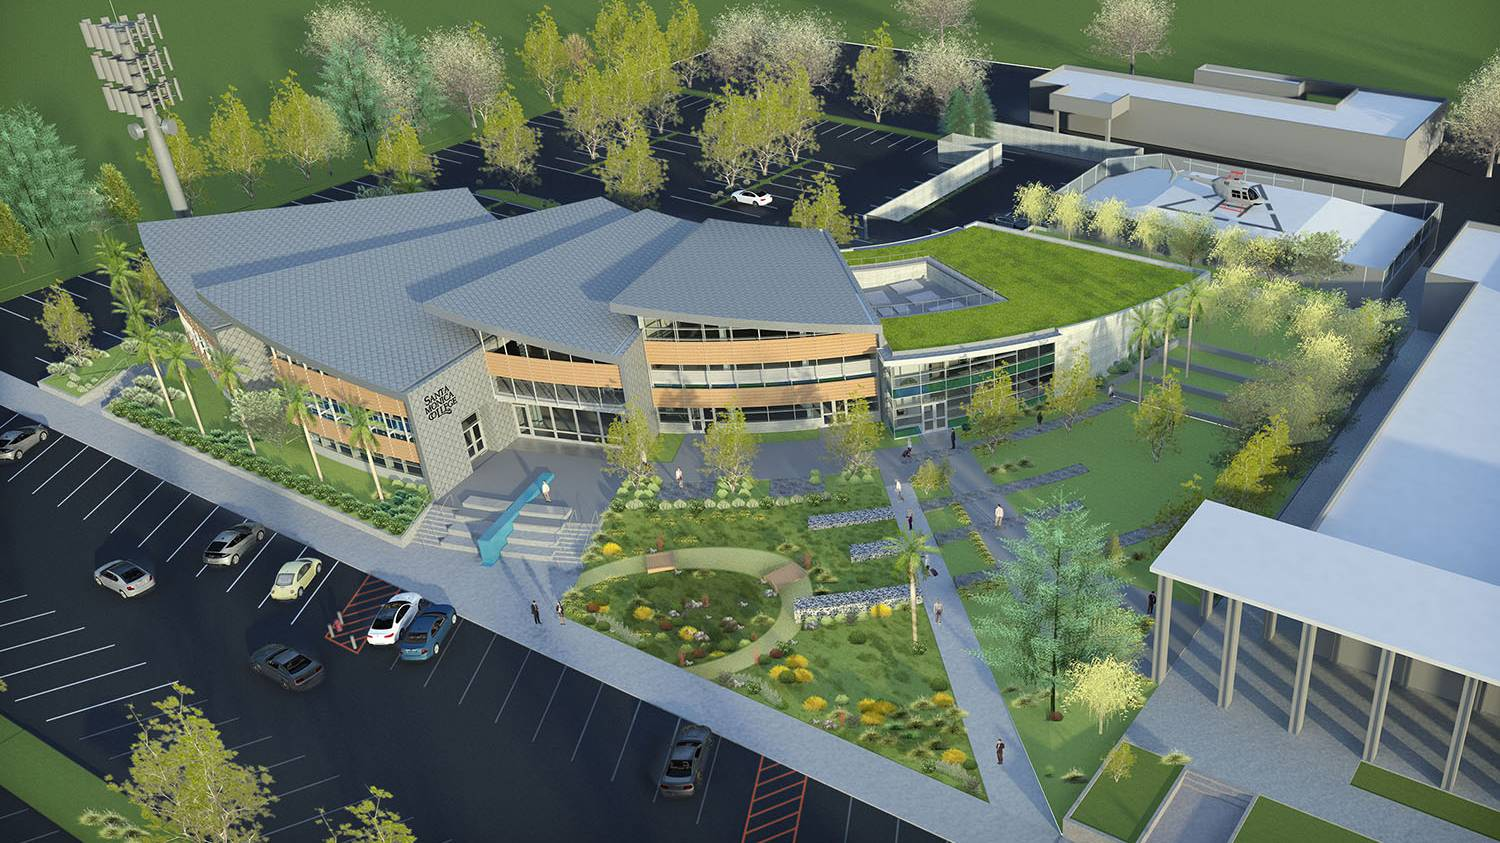 Special Meeting on Malibu Campus and Sheriff Substation Project